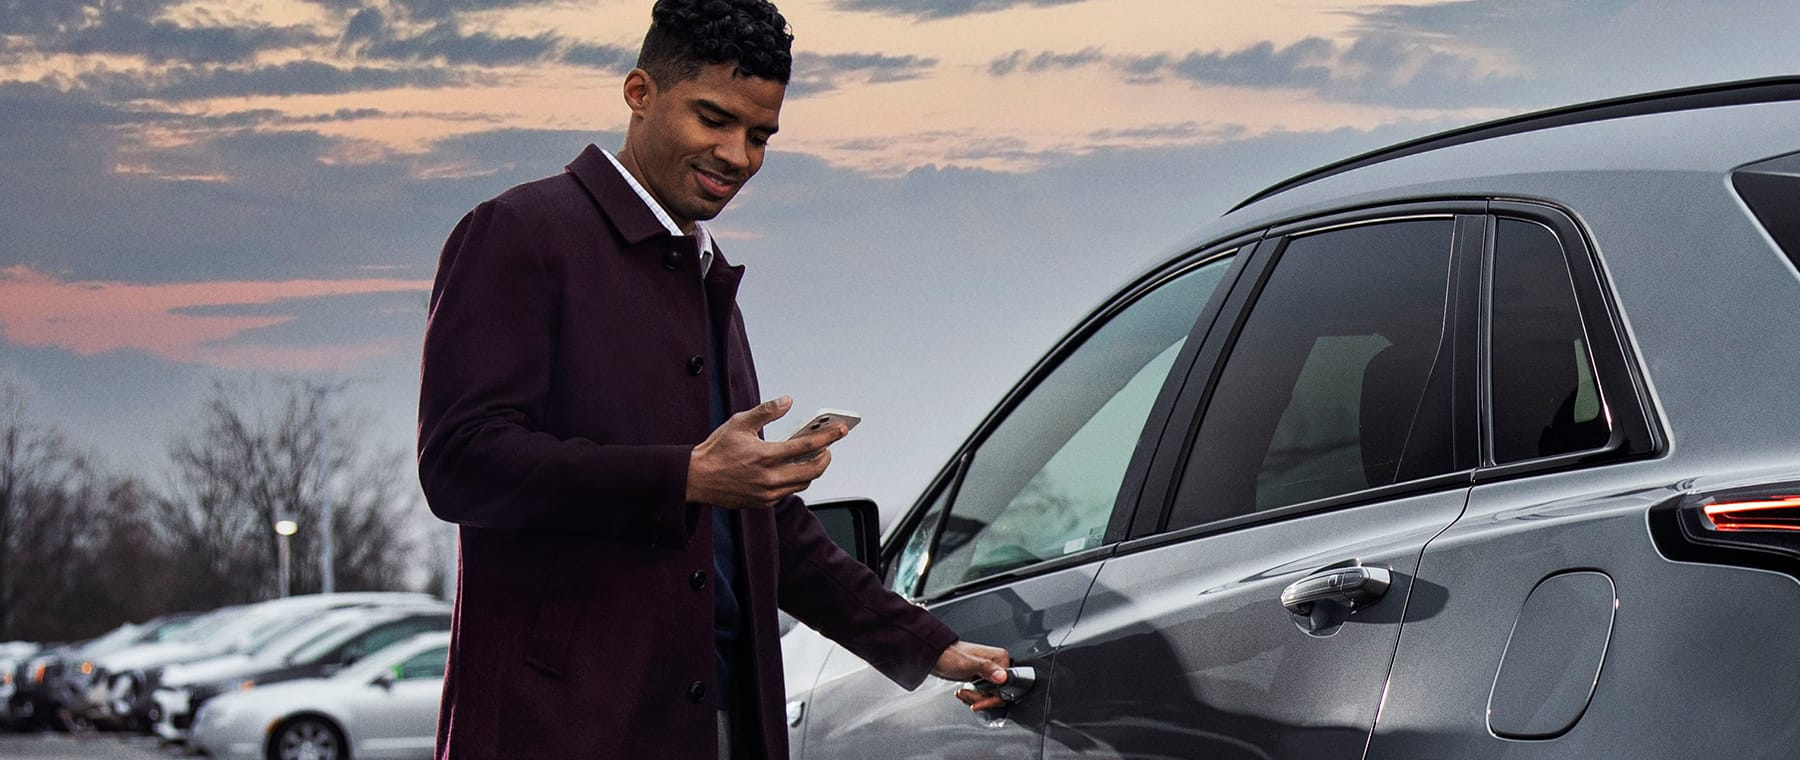 A guy at the driver door, with his hand on the door handle, using his phone.